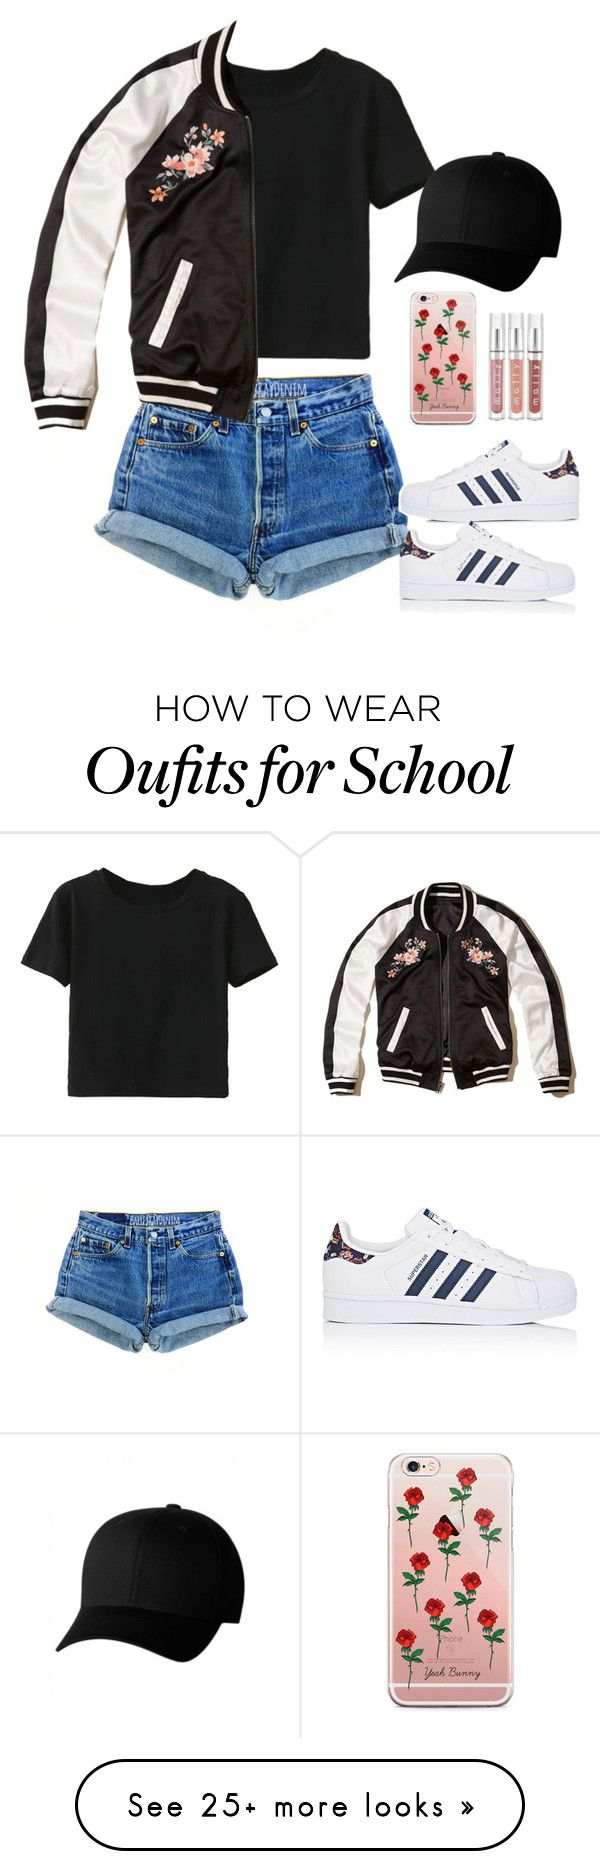 """""""Untitled #392"""" by tired-unicorn on Polyvore featuring WithChic, Hollister Co., adidas and Flexfit"""